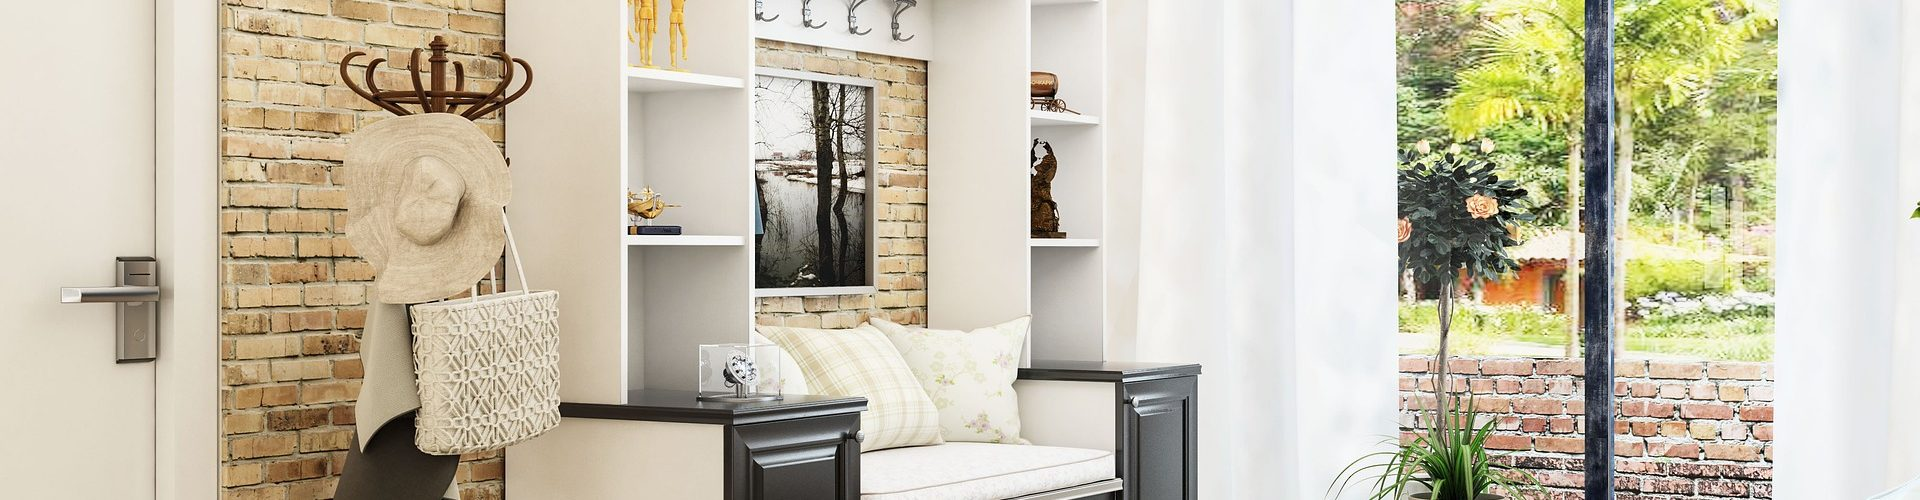 5 Ingenious Studio Apartment Storage Ideas to Maximize Space